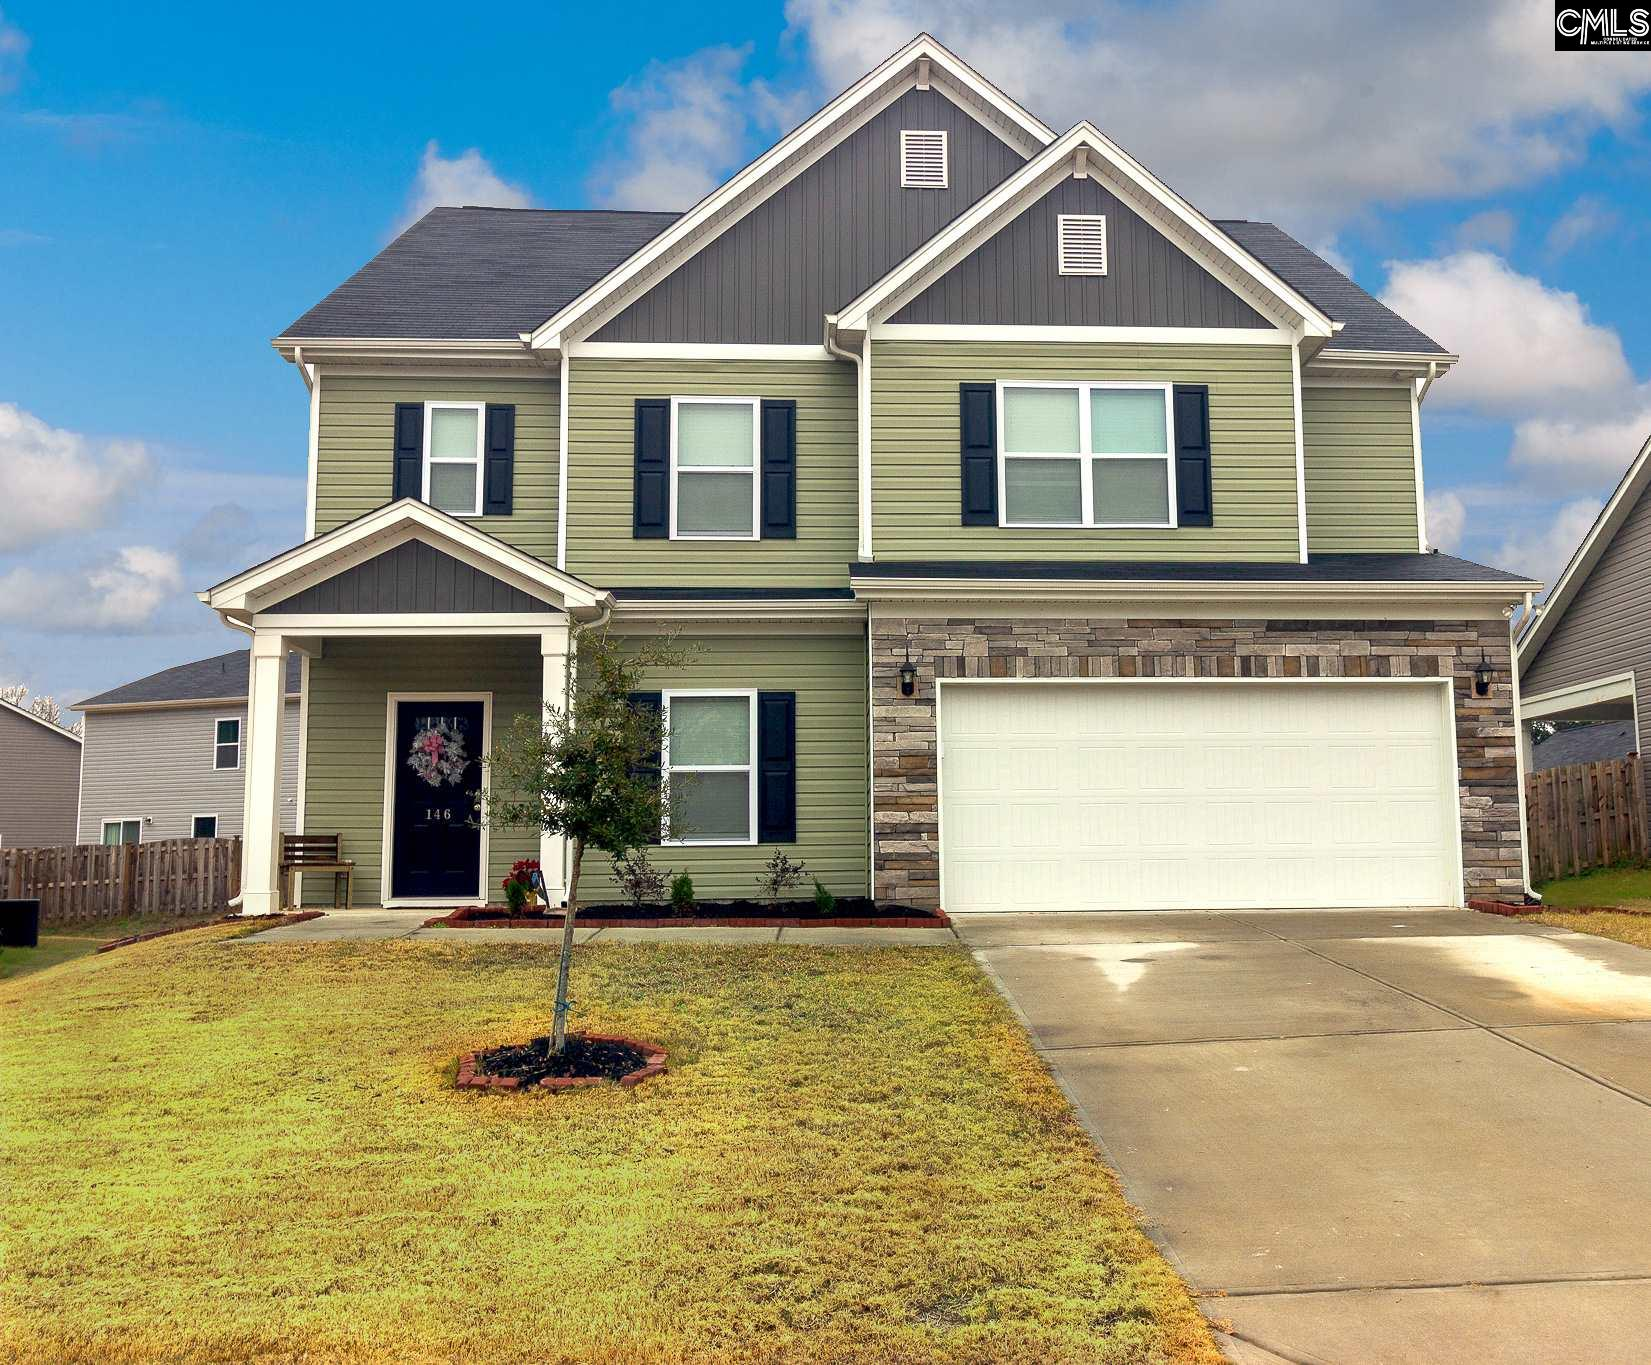 146 Plum Orchard Drive West Columbia, SC 29170-4500